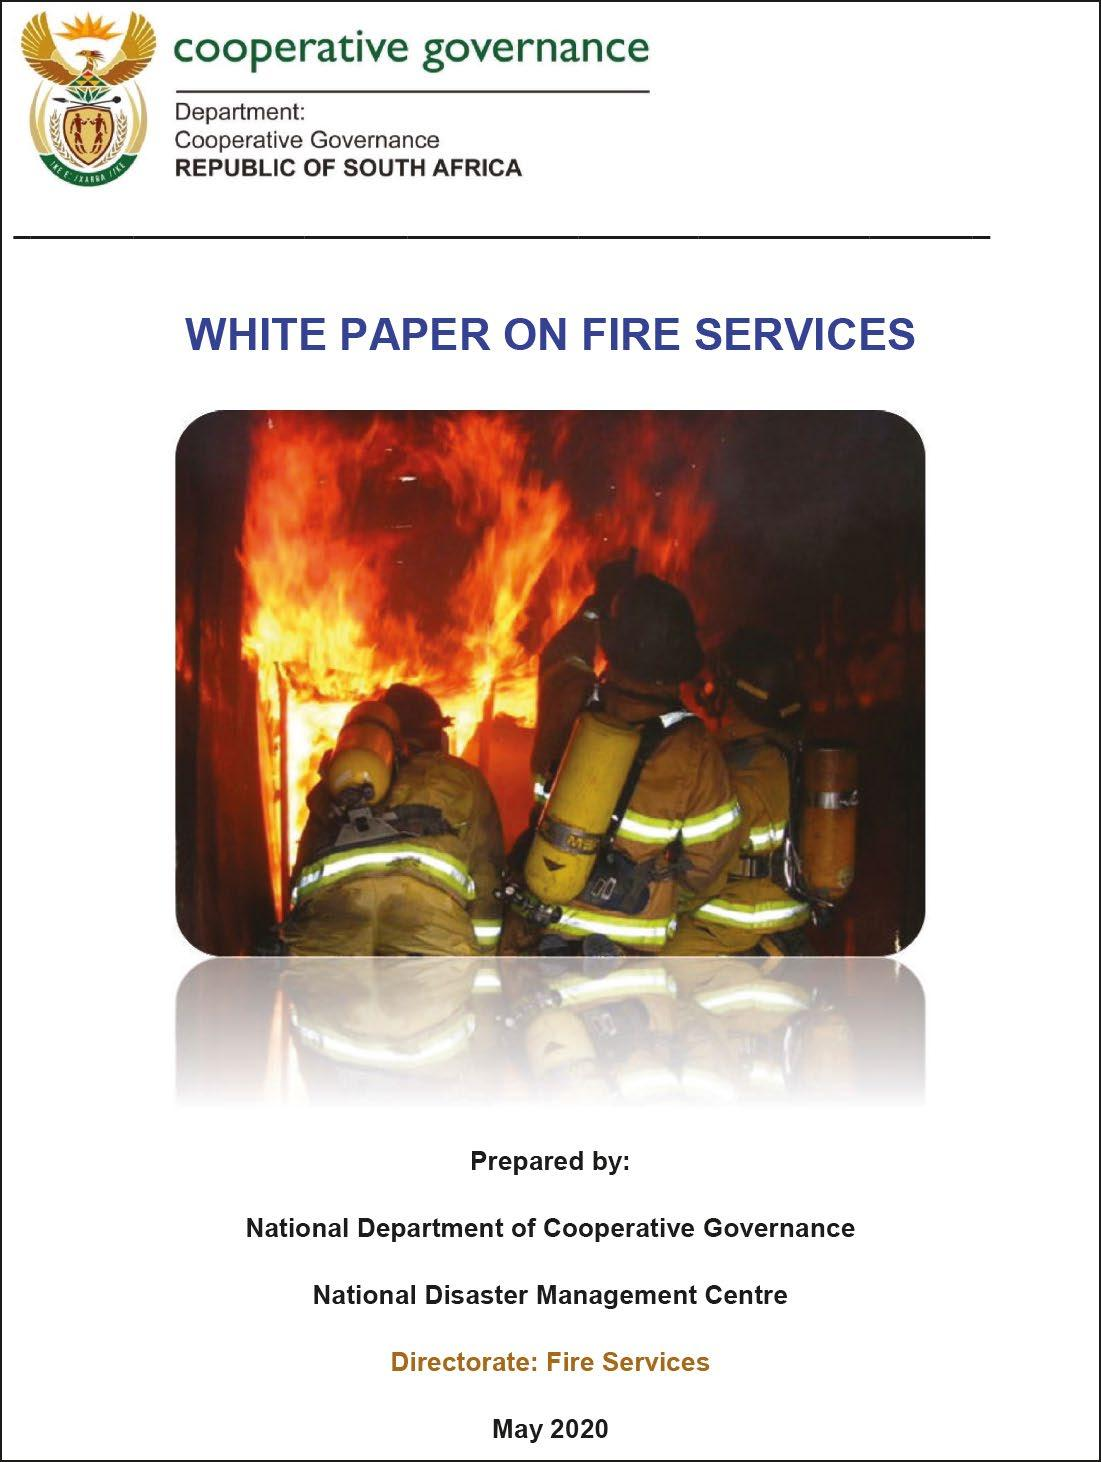 Page 8 of National Disaster Management Centre White Paper on Fire Services gazetted on 25 September 2020 - by Dr Musiwalo Moses Khangale